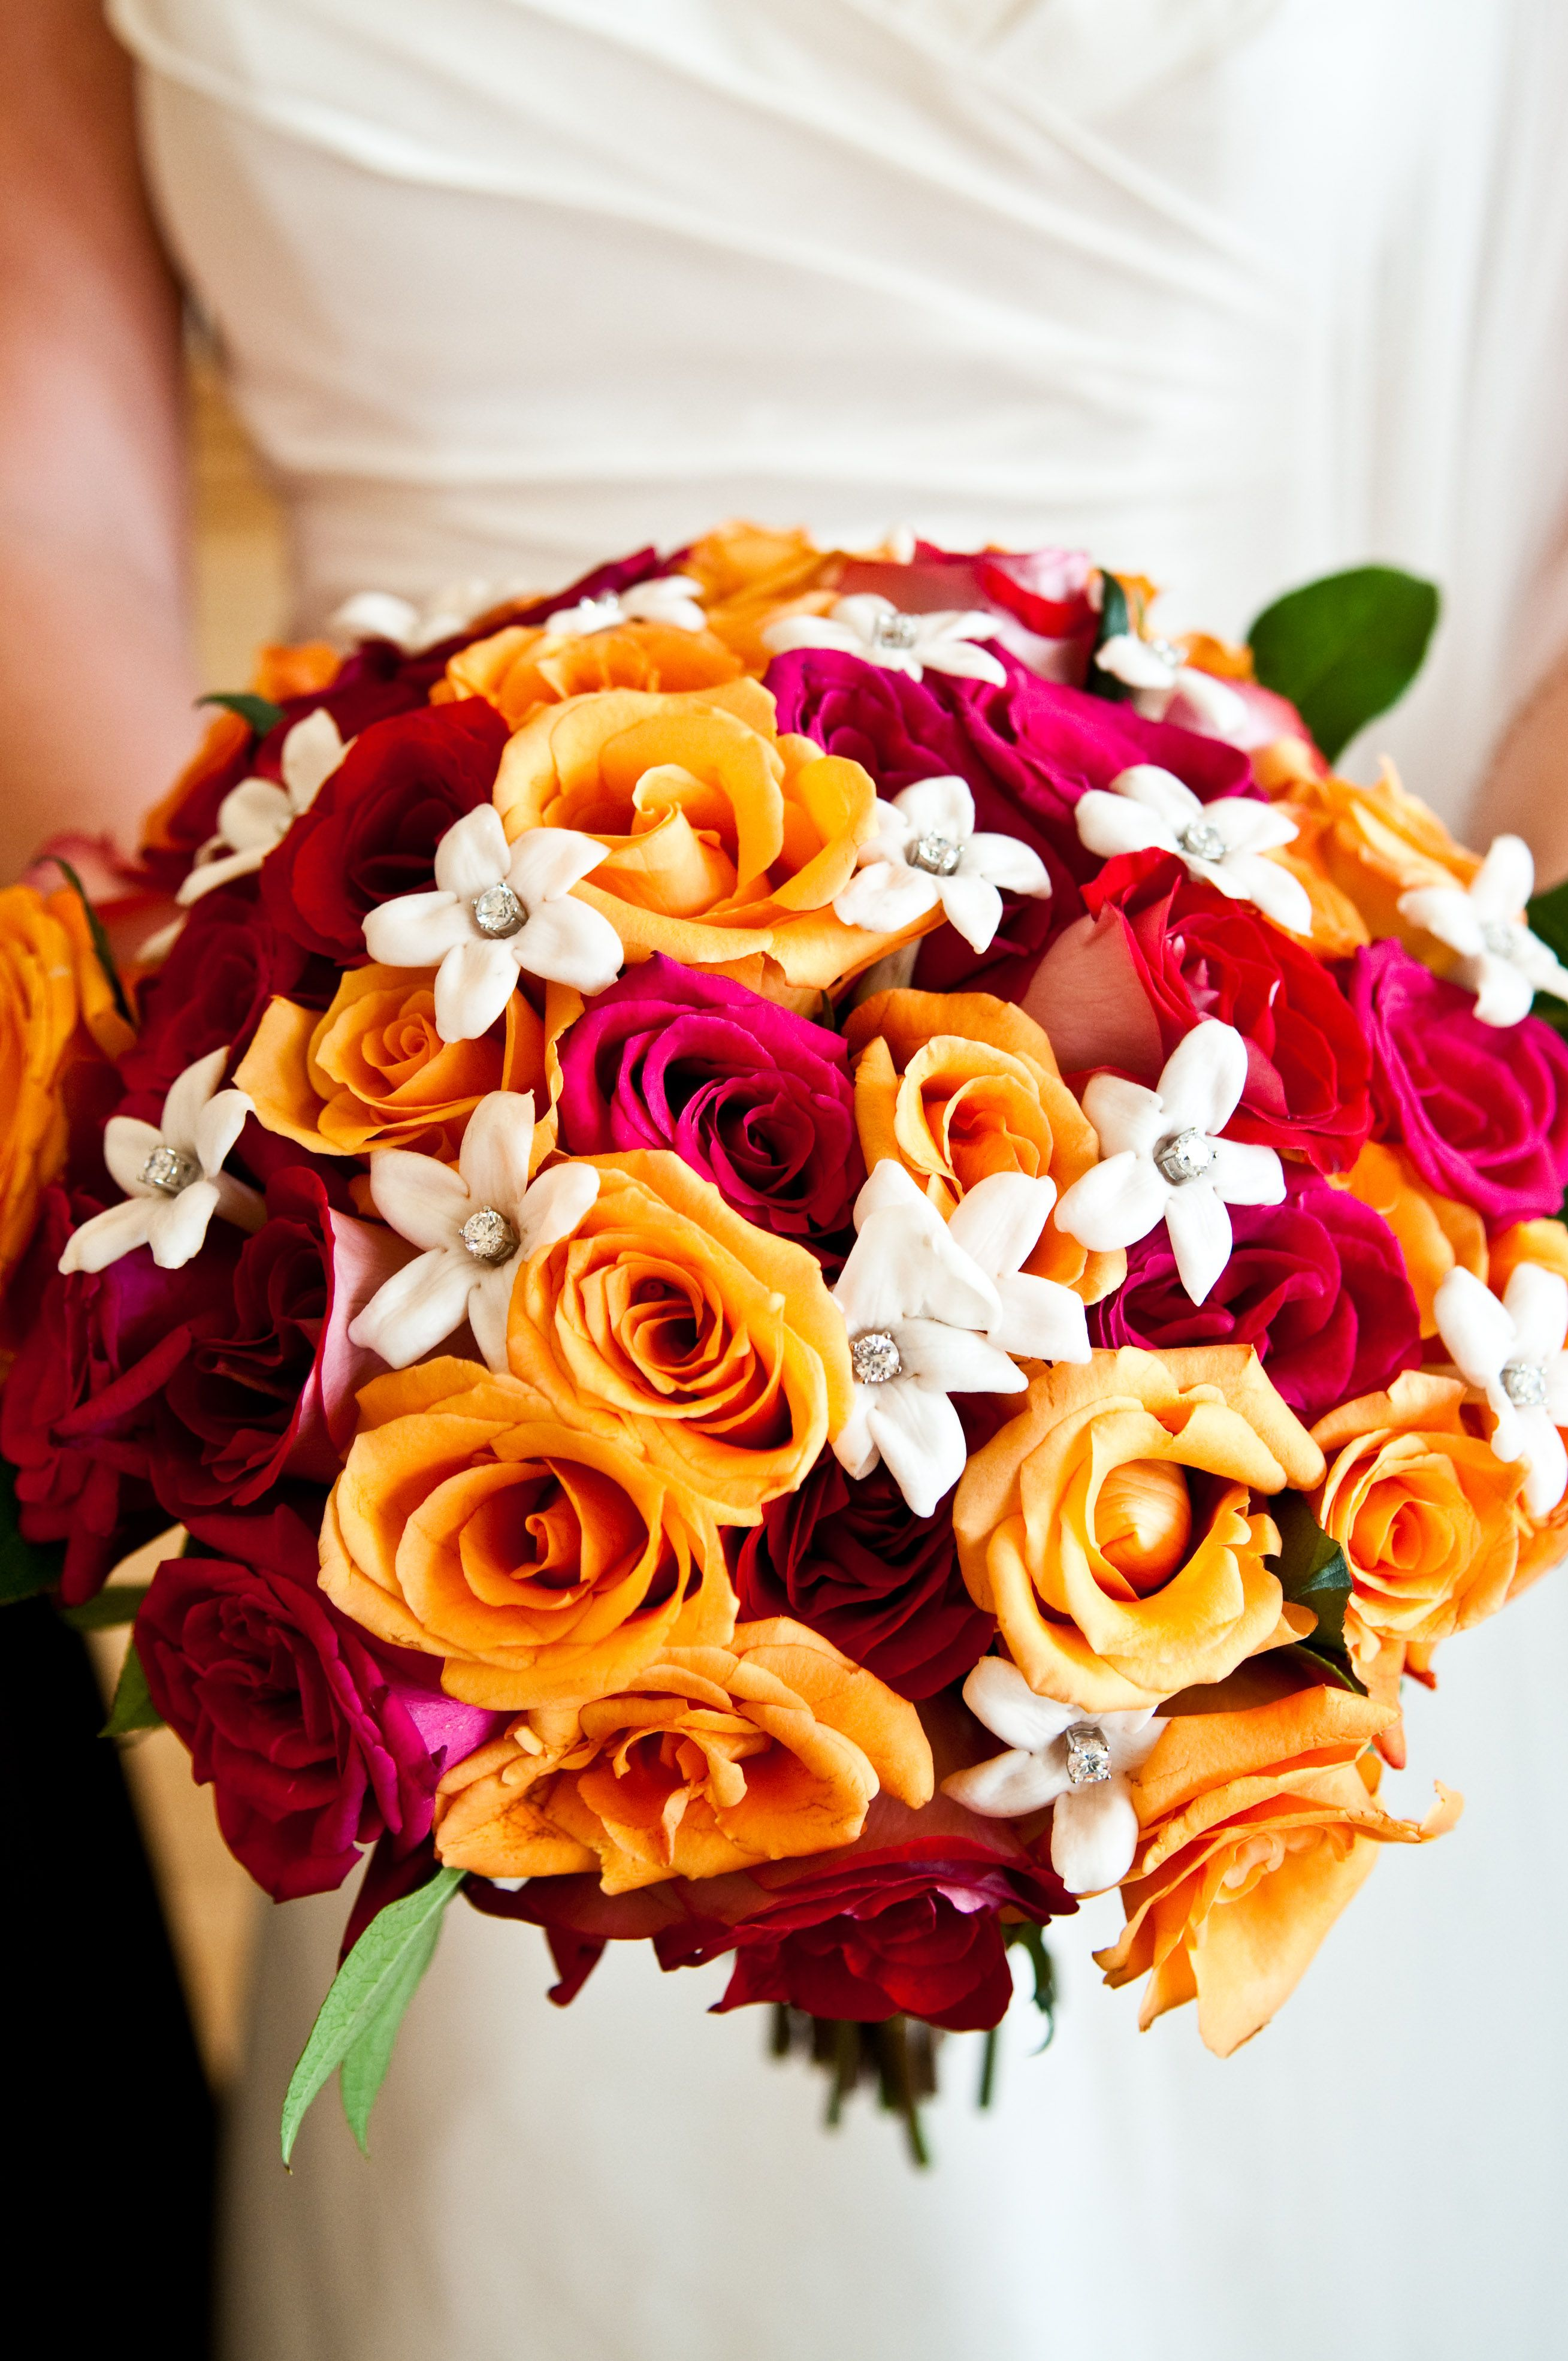 Bridal Bouquet Red Hot Pink Orange And White With Crystals